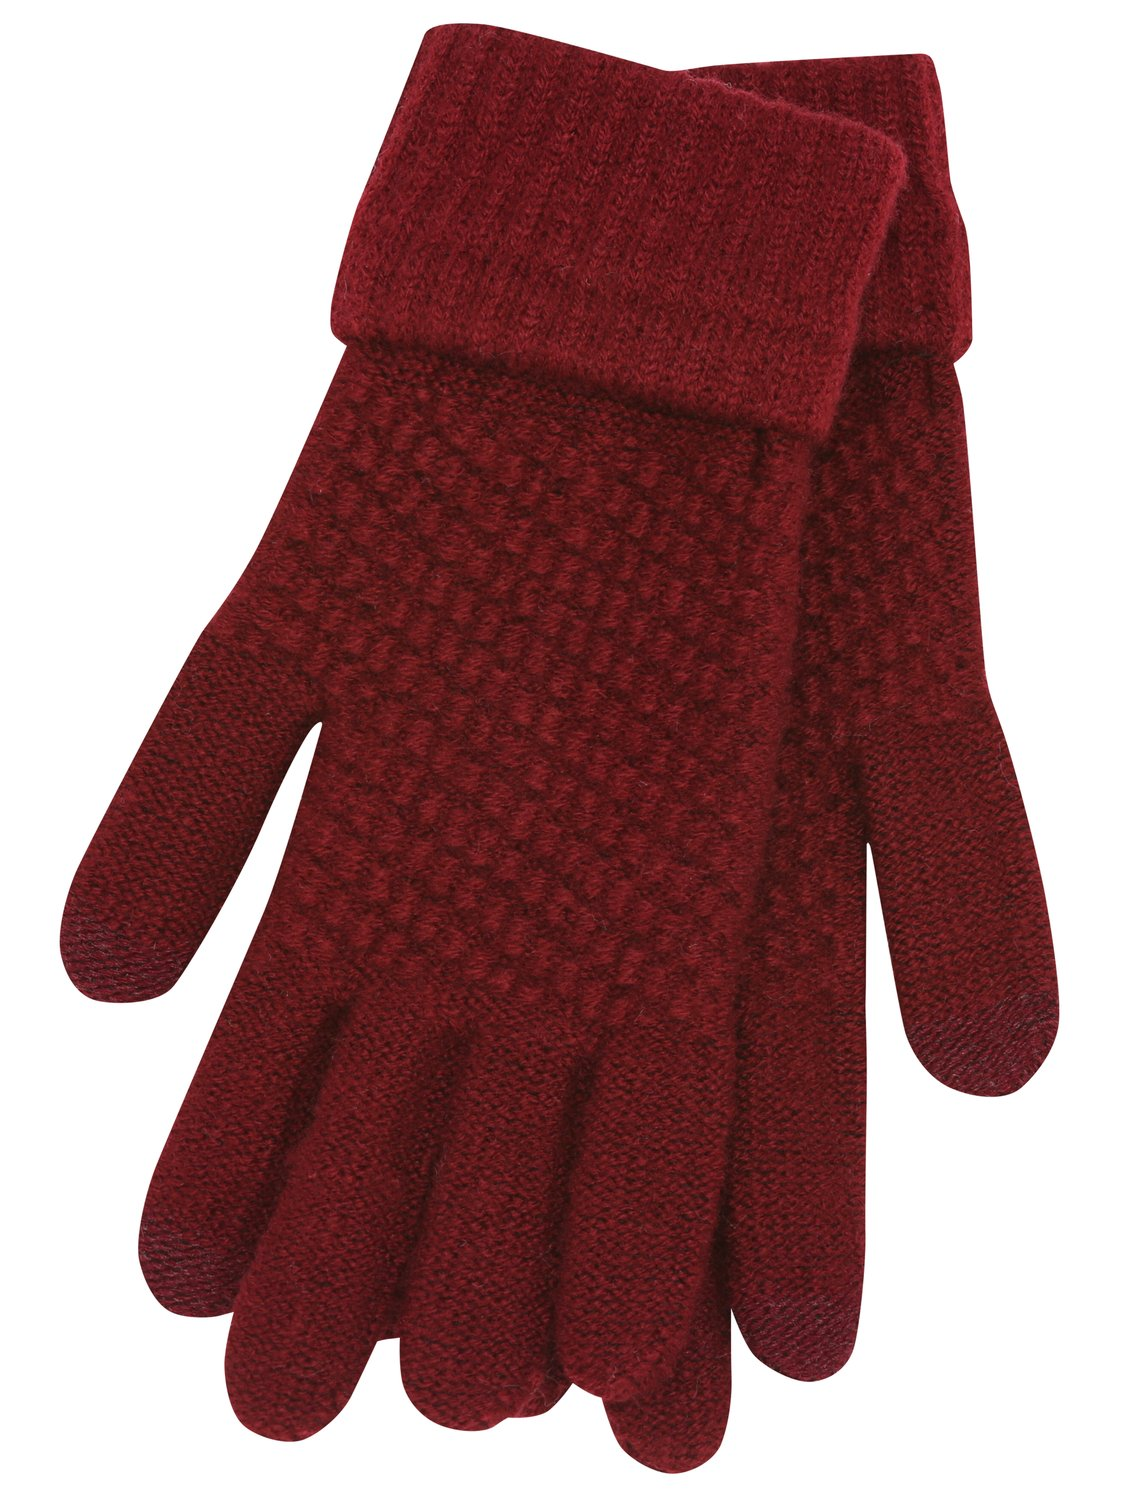 ladies touch screen knitted gloves smart phone and tablet compatible one size stretch fit  - ruby